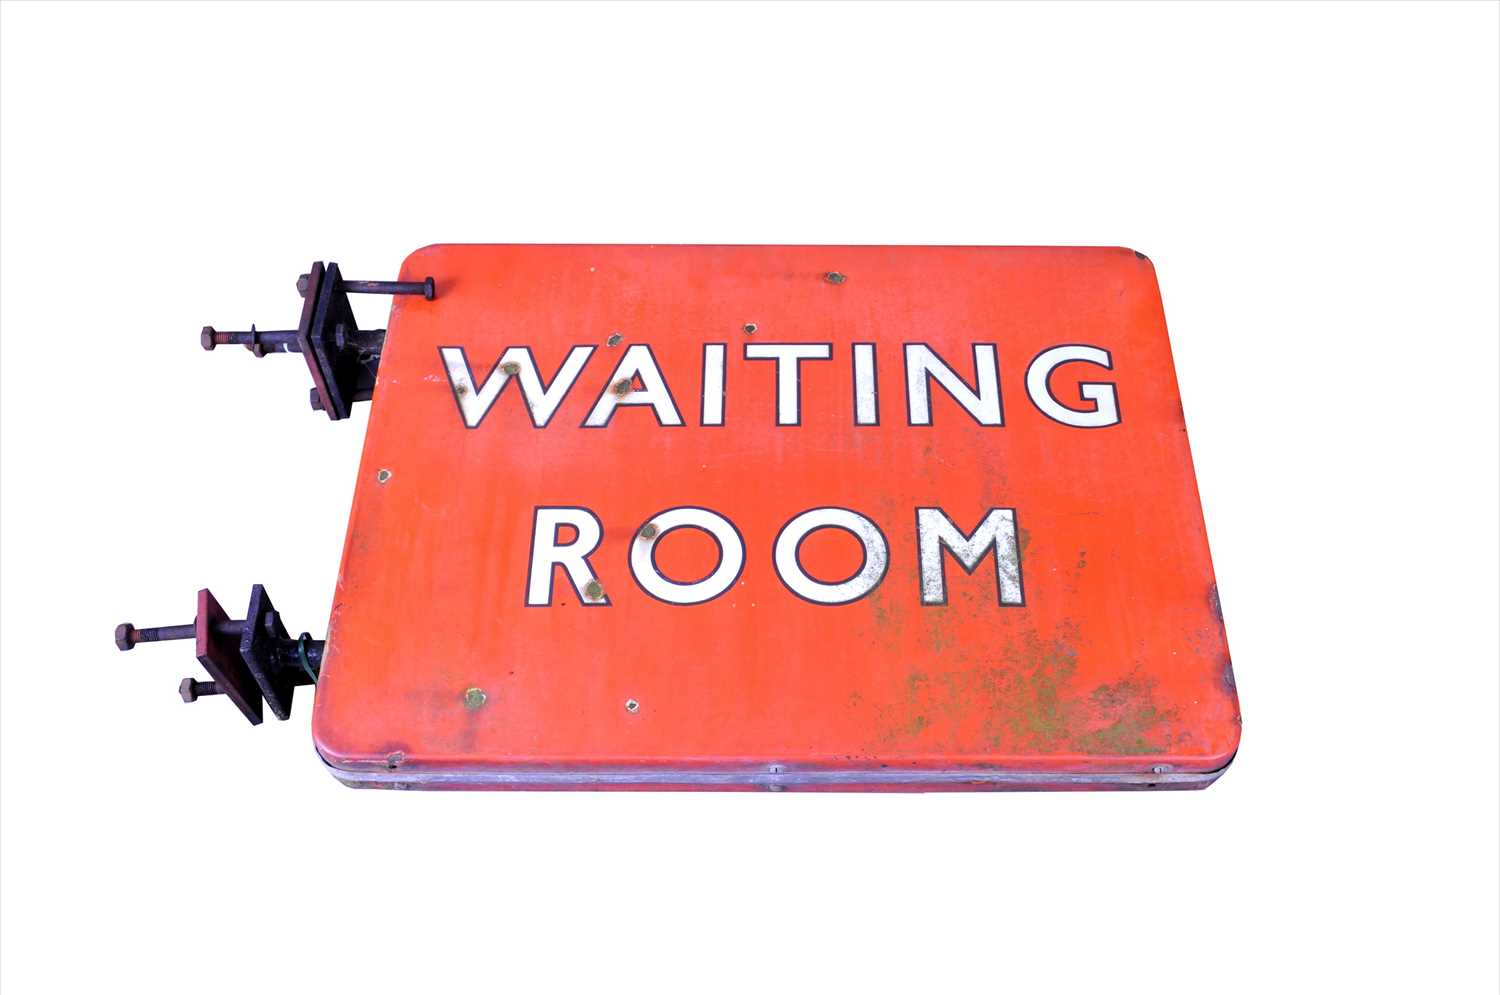 Lot 629 - A large double-sided 20th century enamel 'Waiting Room' sign, possibly British Railways